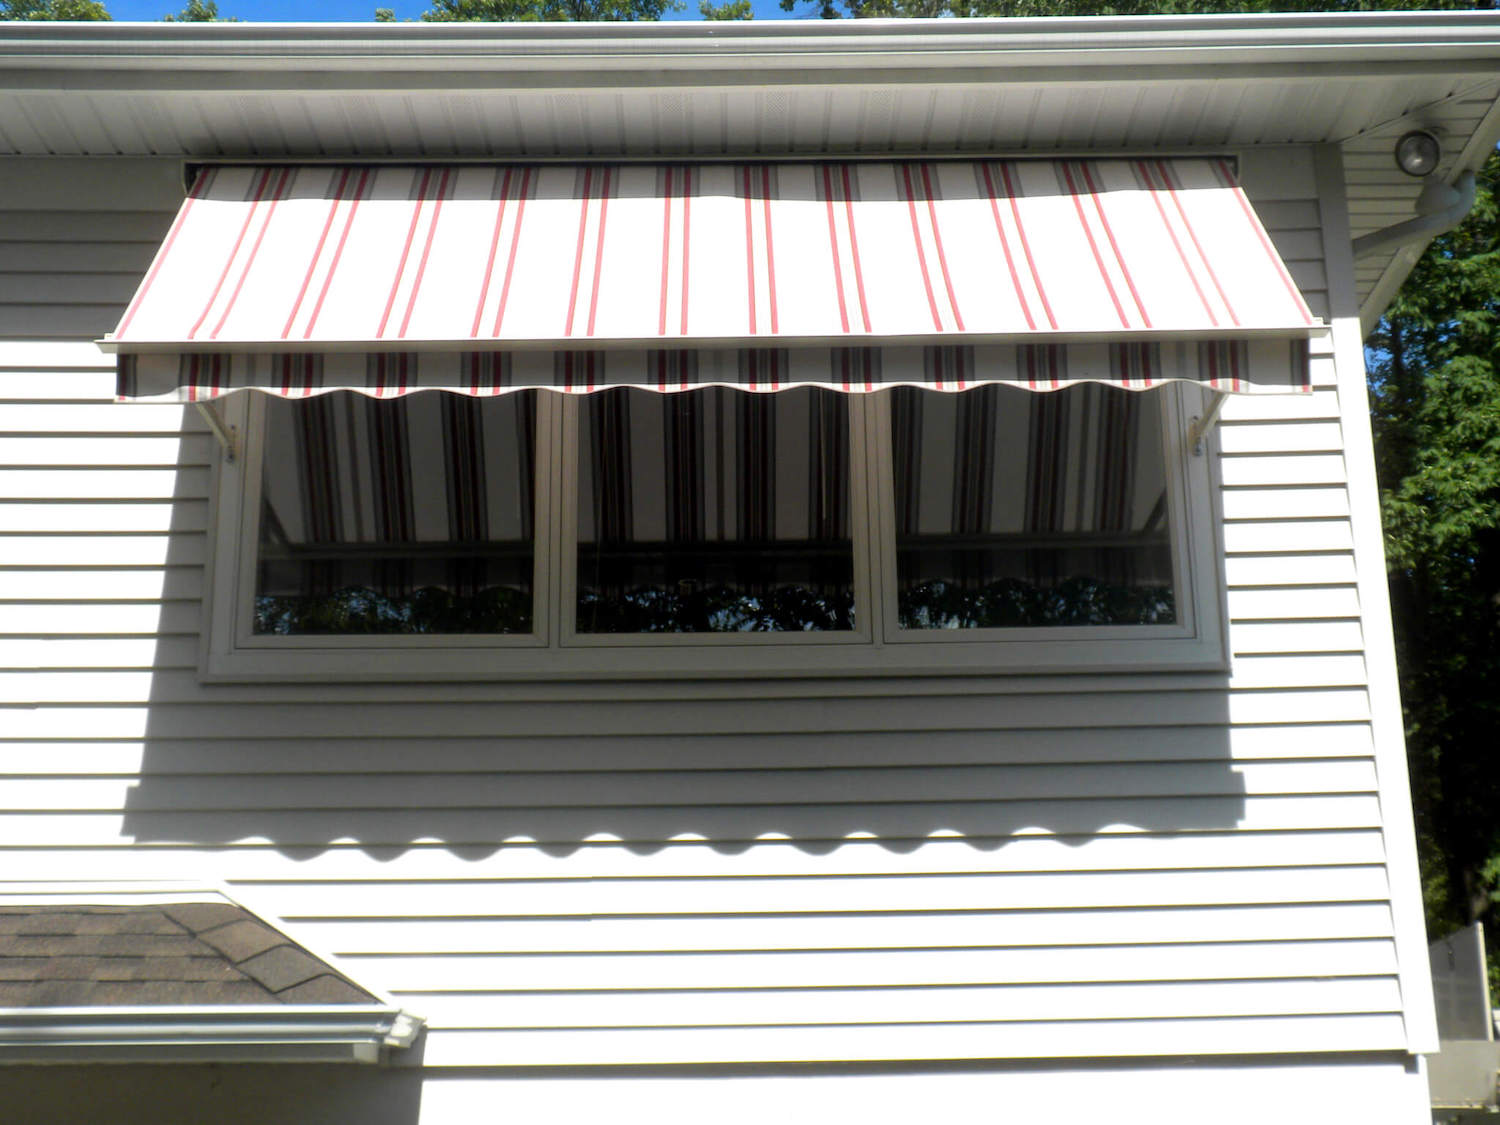 awning r components pitch group estensibile us sun bat arm folding lateral awnings braccio tende products sole